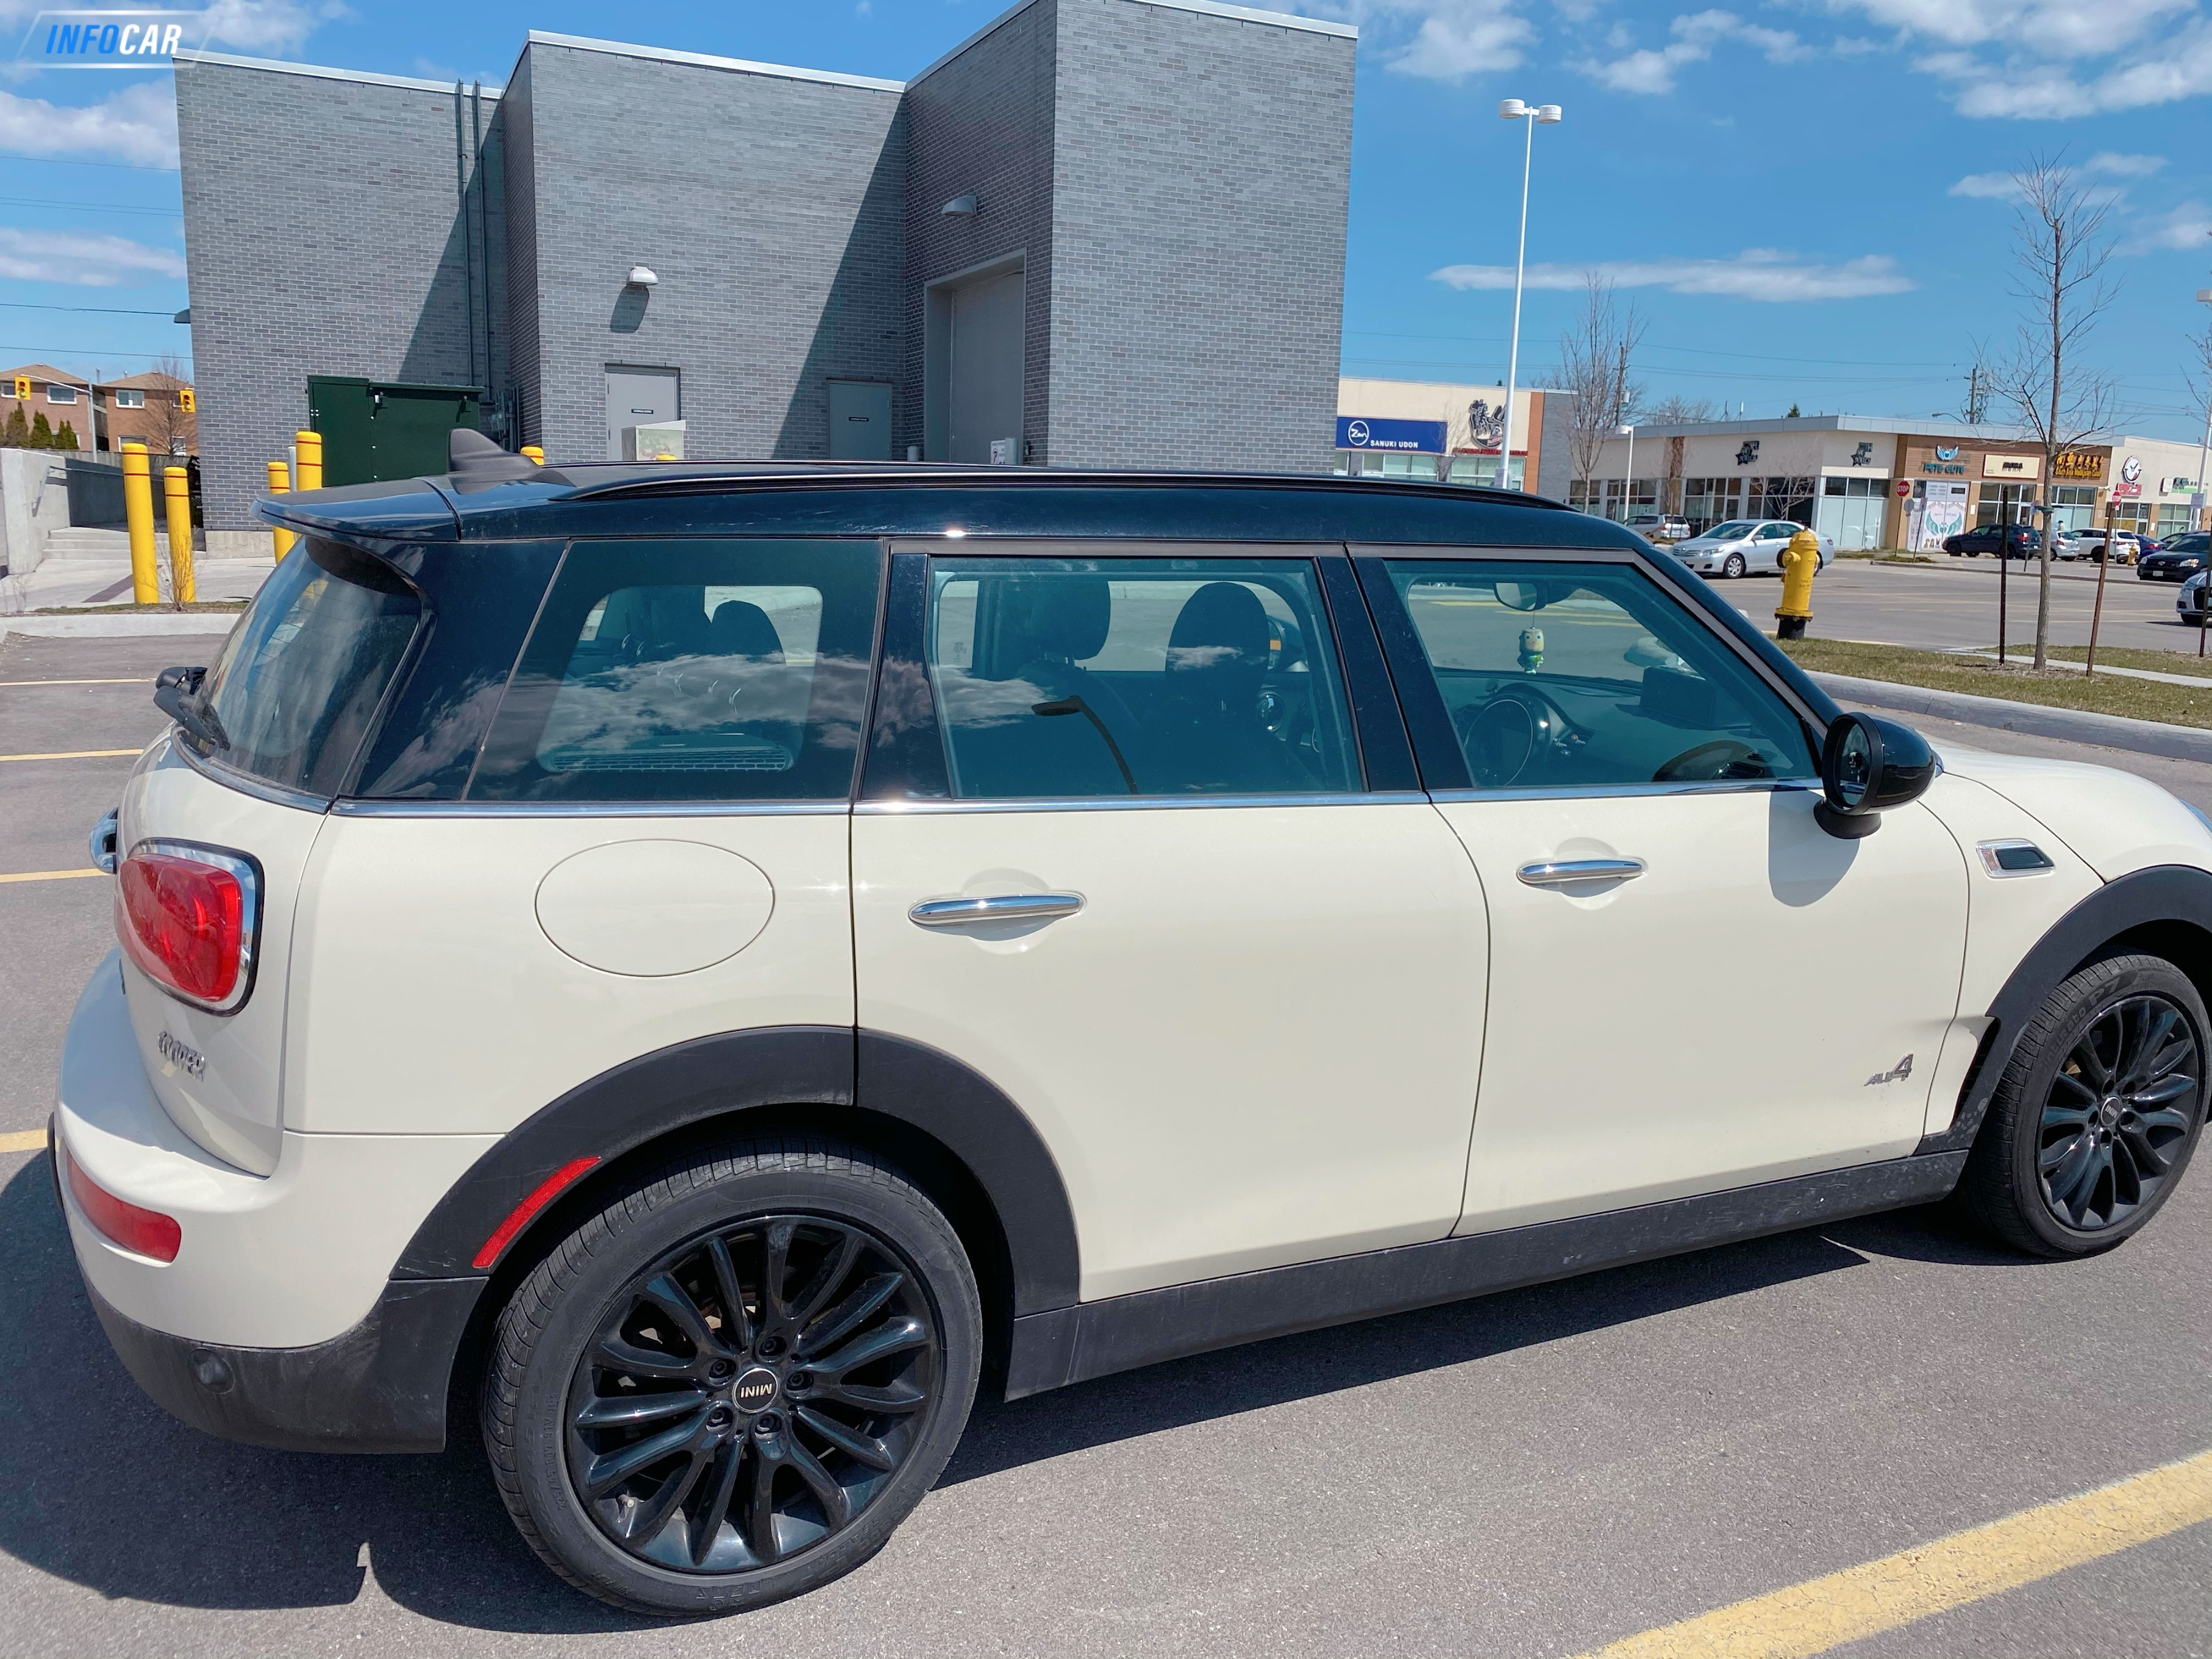 2018 MINI Clubman ALL4 - INFOCAR - Toronto's Most Comprehensive New and Used Auto Trading Platform